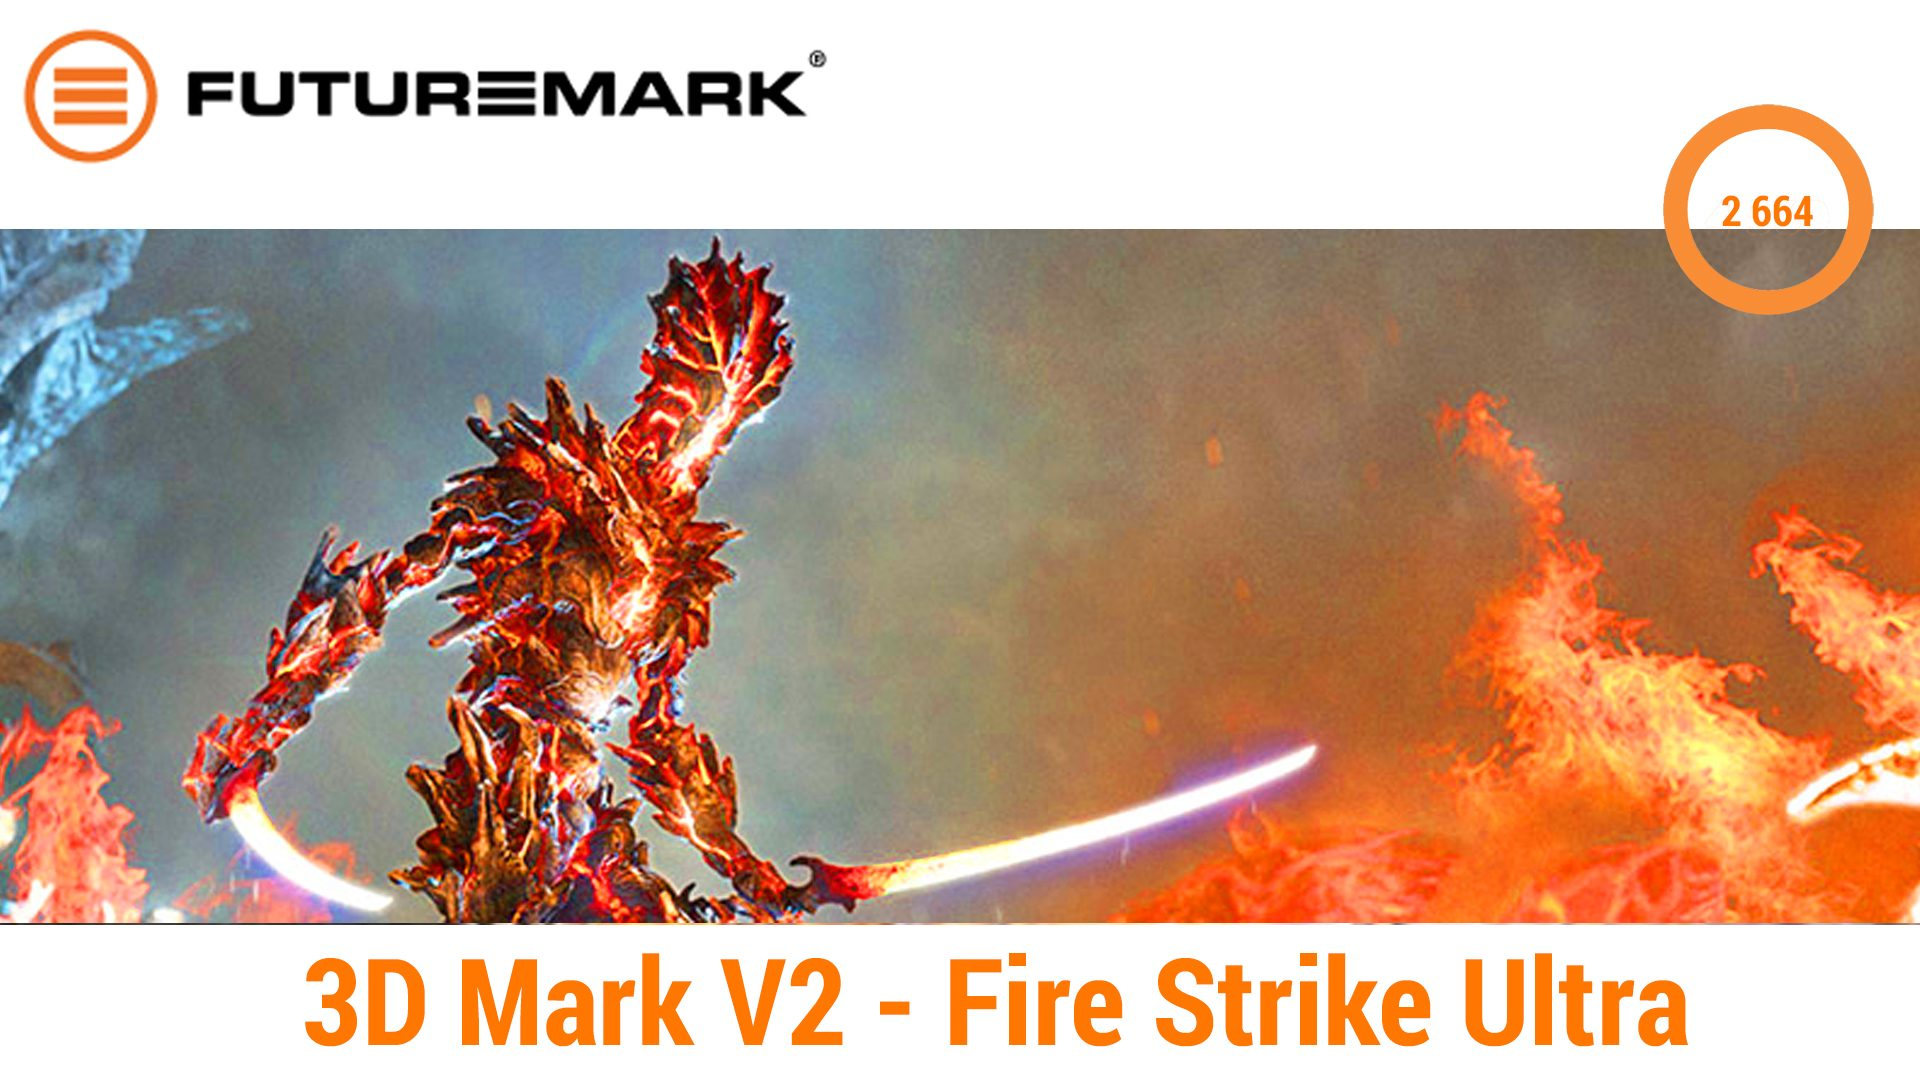 3D Mark V2 – Fire Strike Ultra